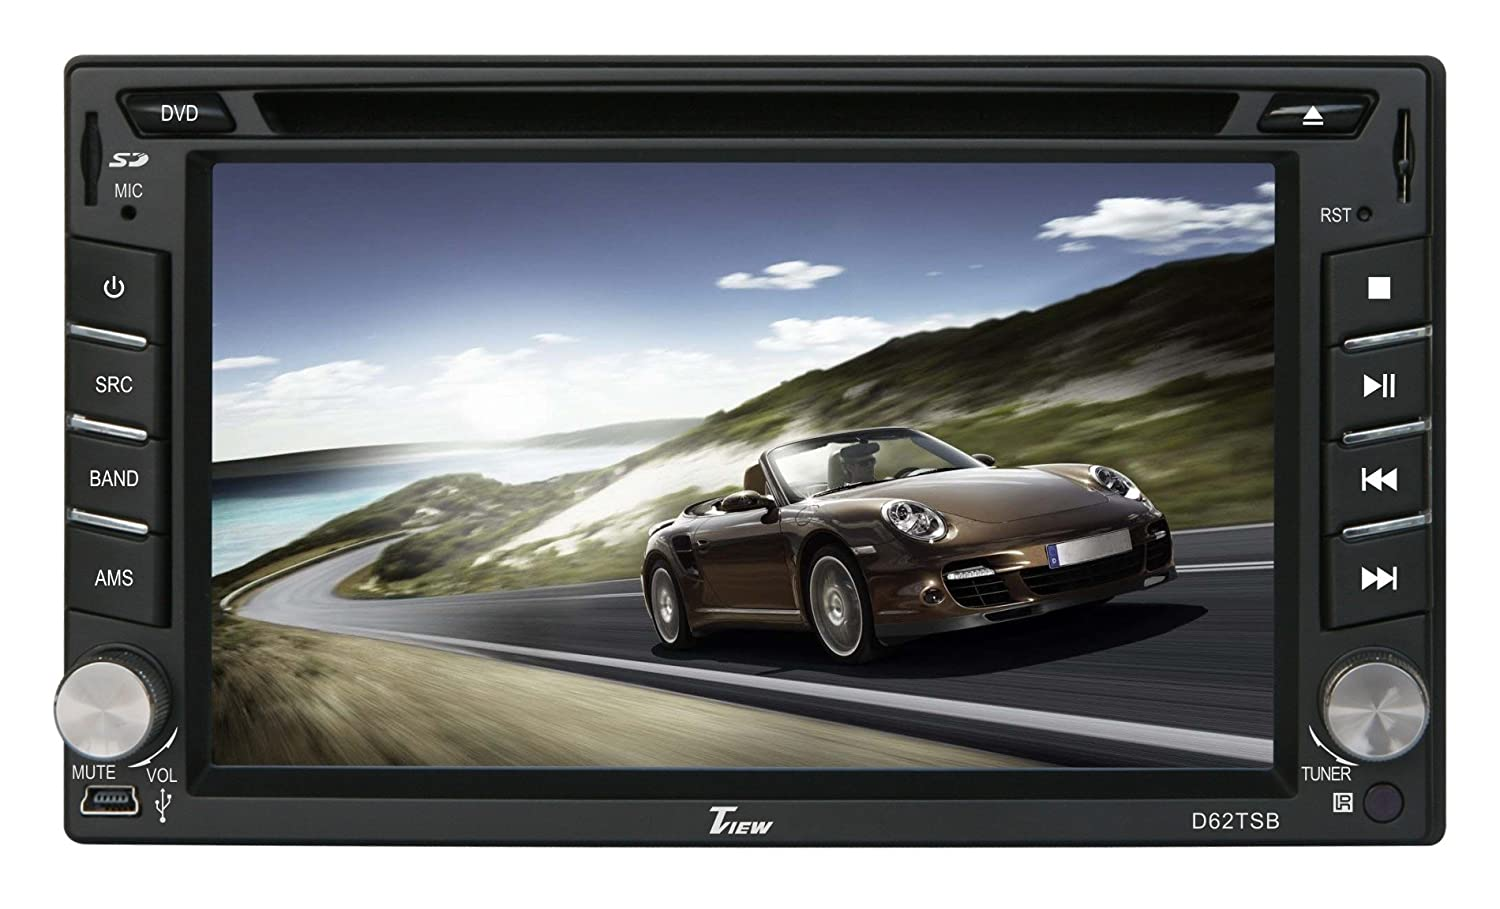 71N8 eVkMJL._SL1500_ amazon com tview d62tsb 6 2 inch double din touch screen with  at edmiracle.co